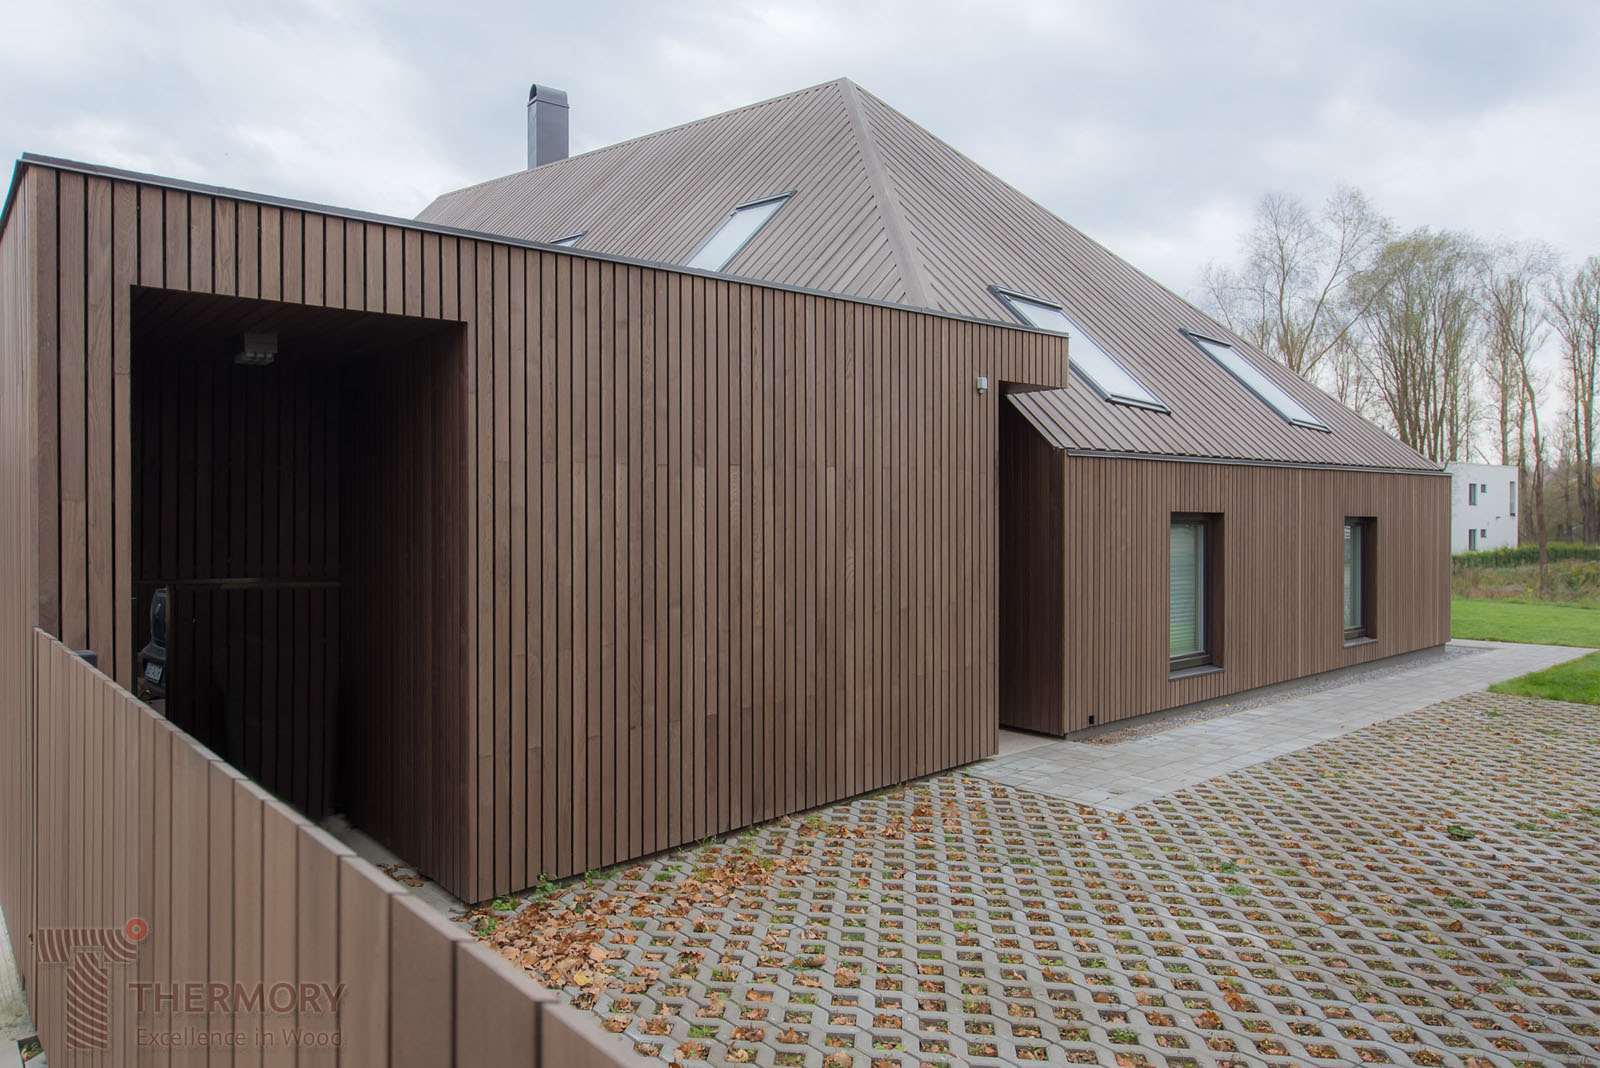 Thermory Ash Cladding_All build in thermoash, Estonia (2).jpg